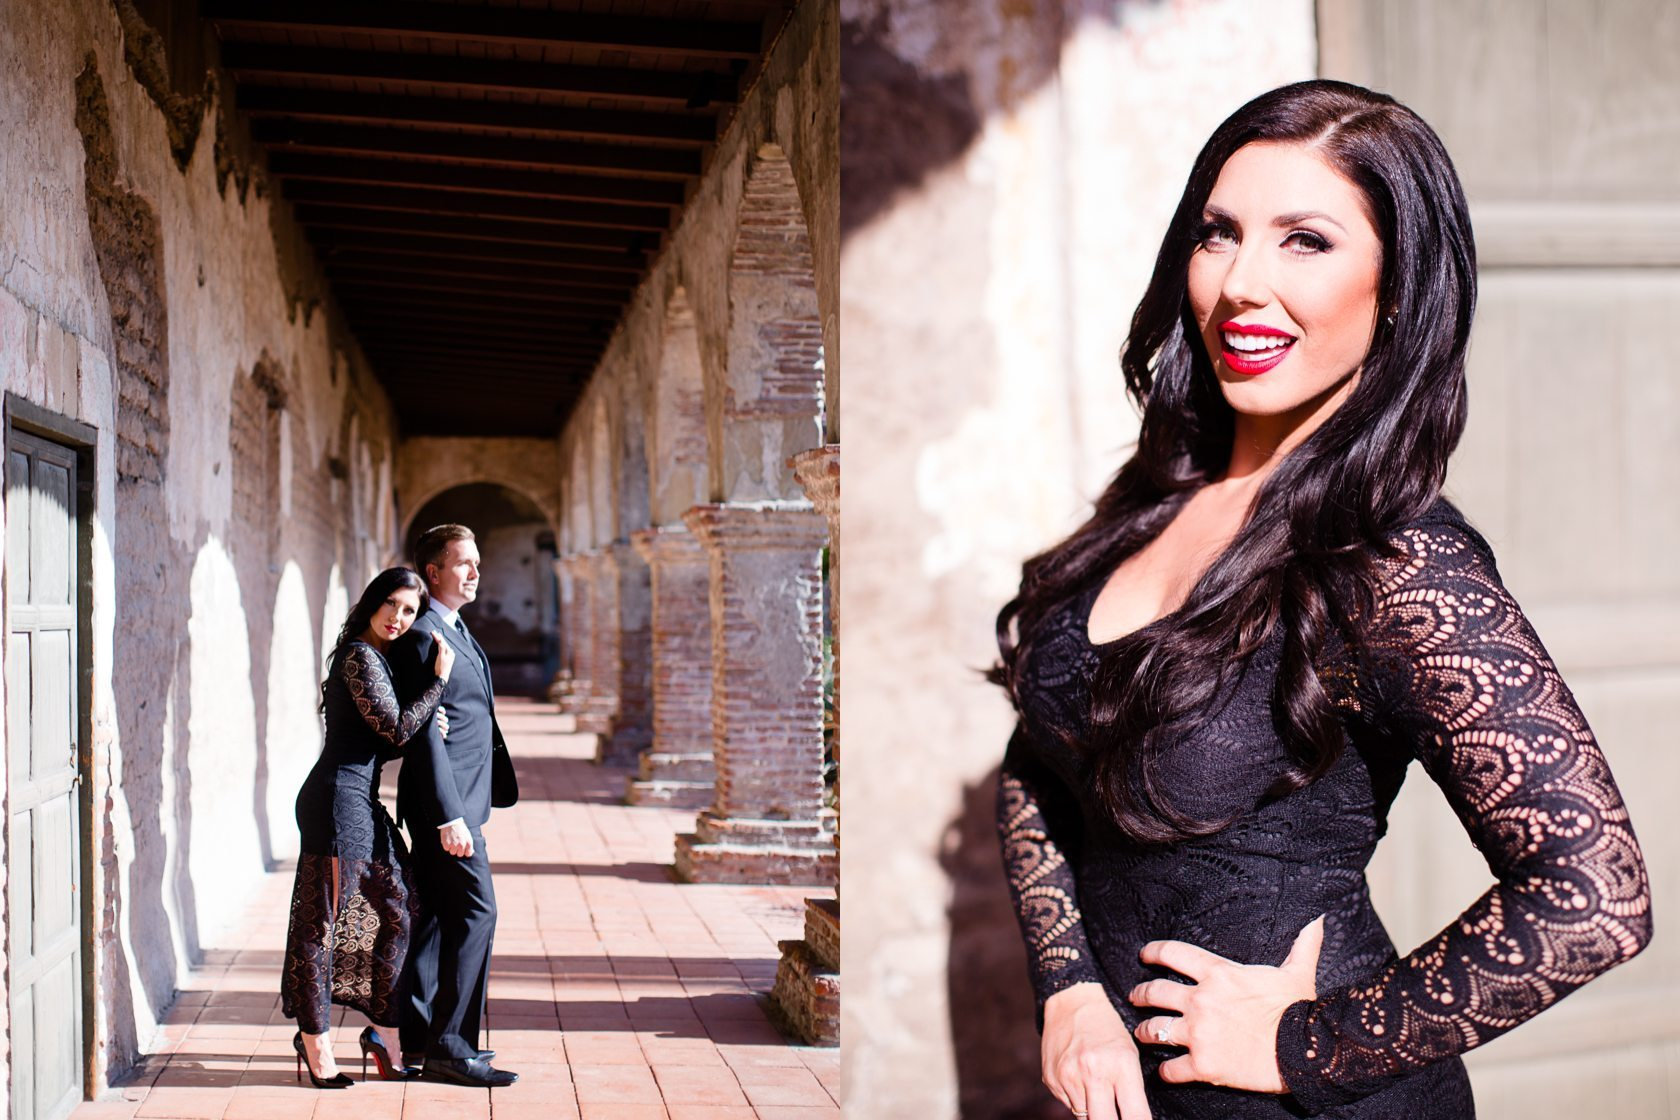 Mission_San_Juan_Capistrano_Engagement_Session_09.jpg